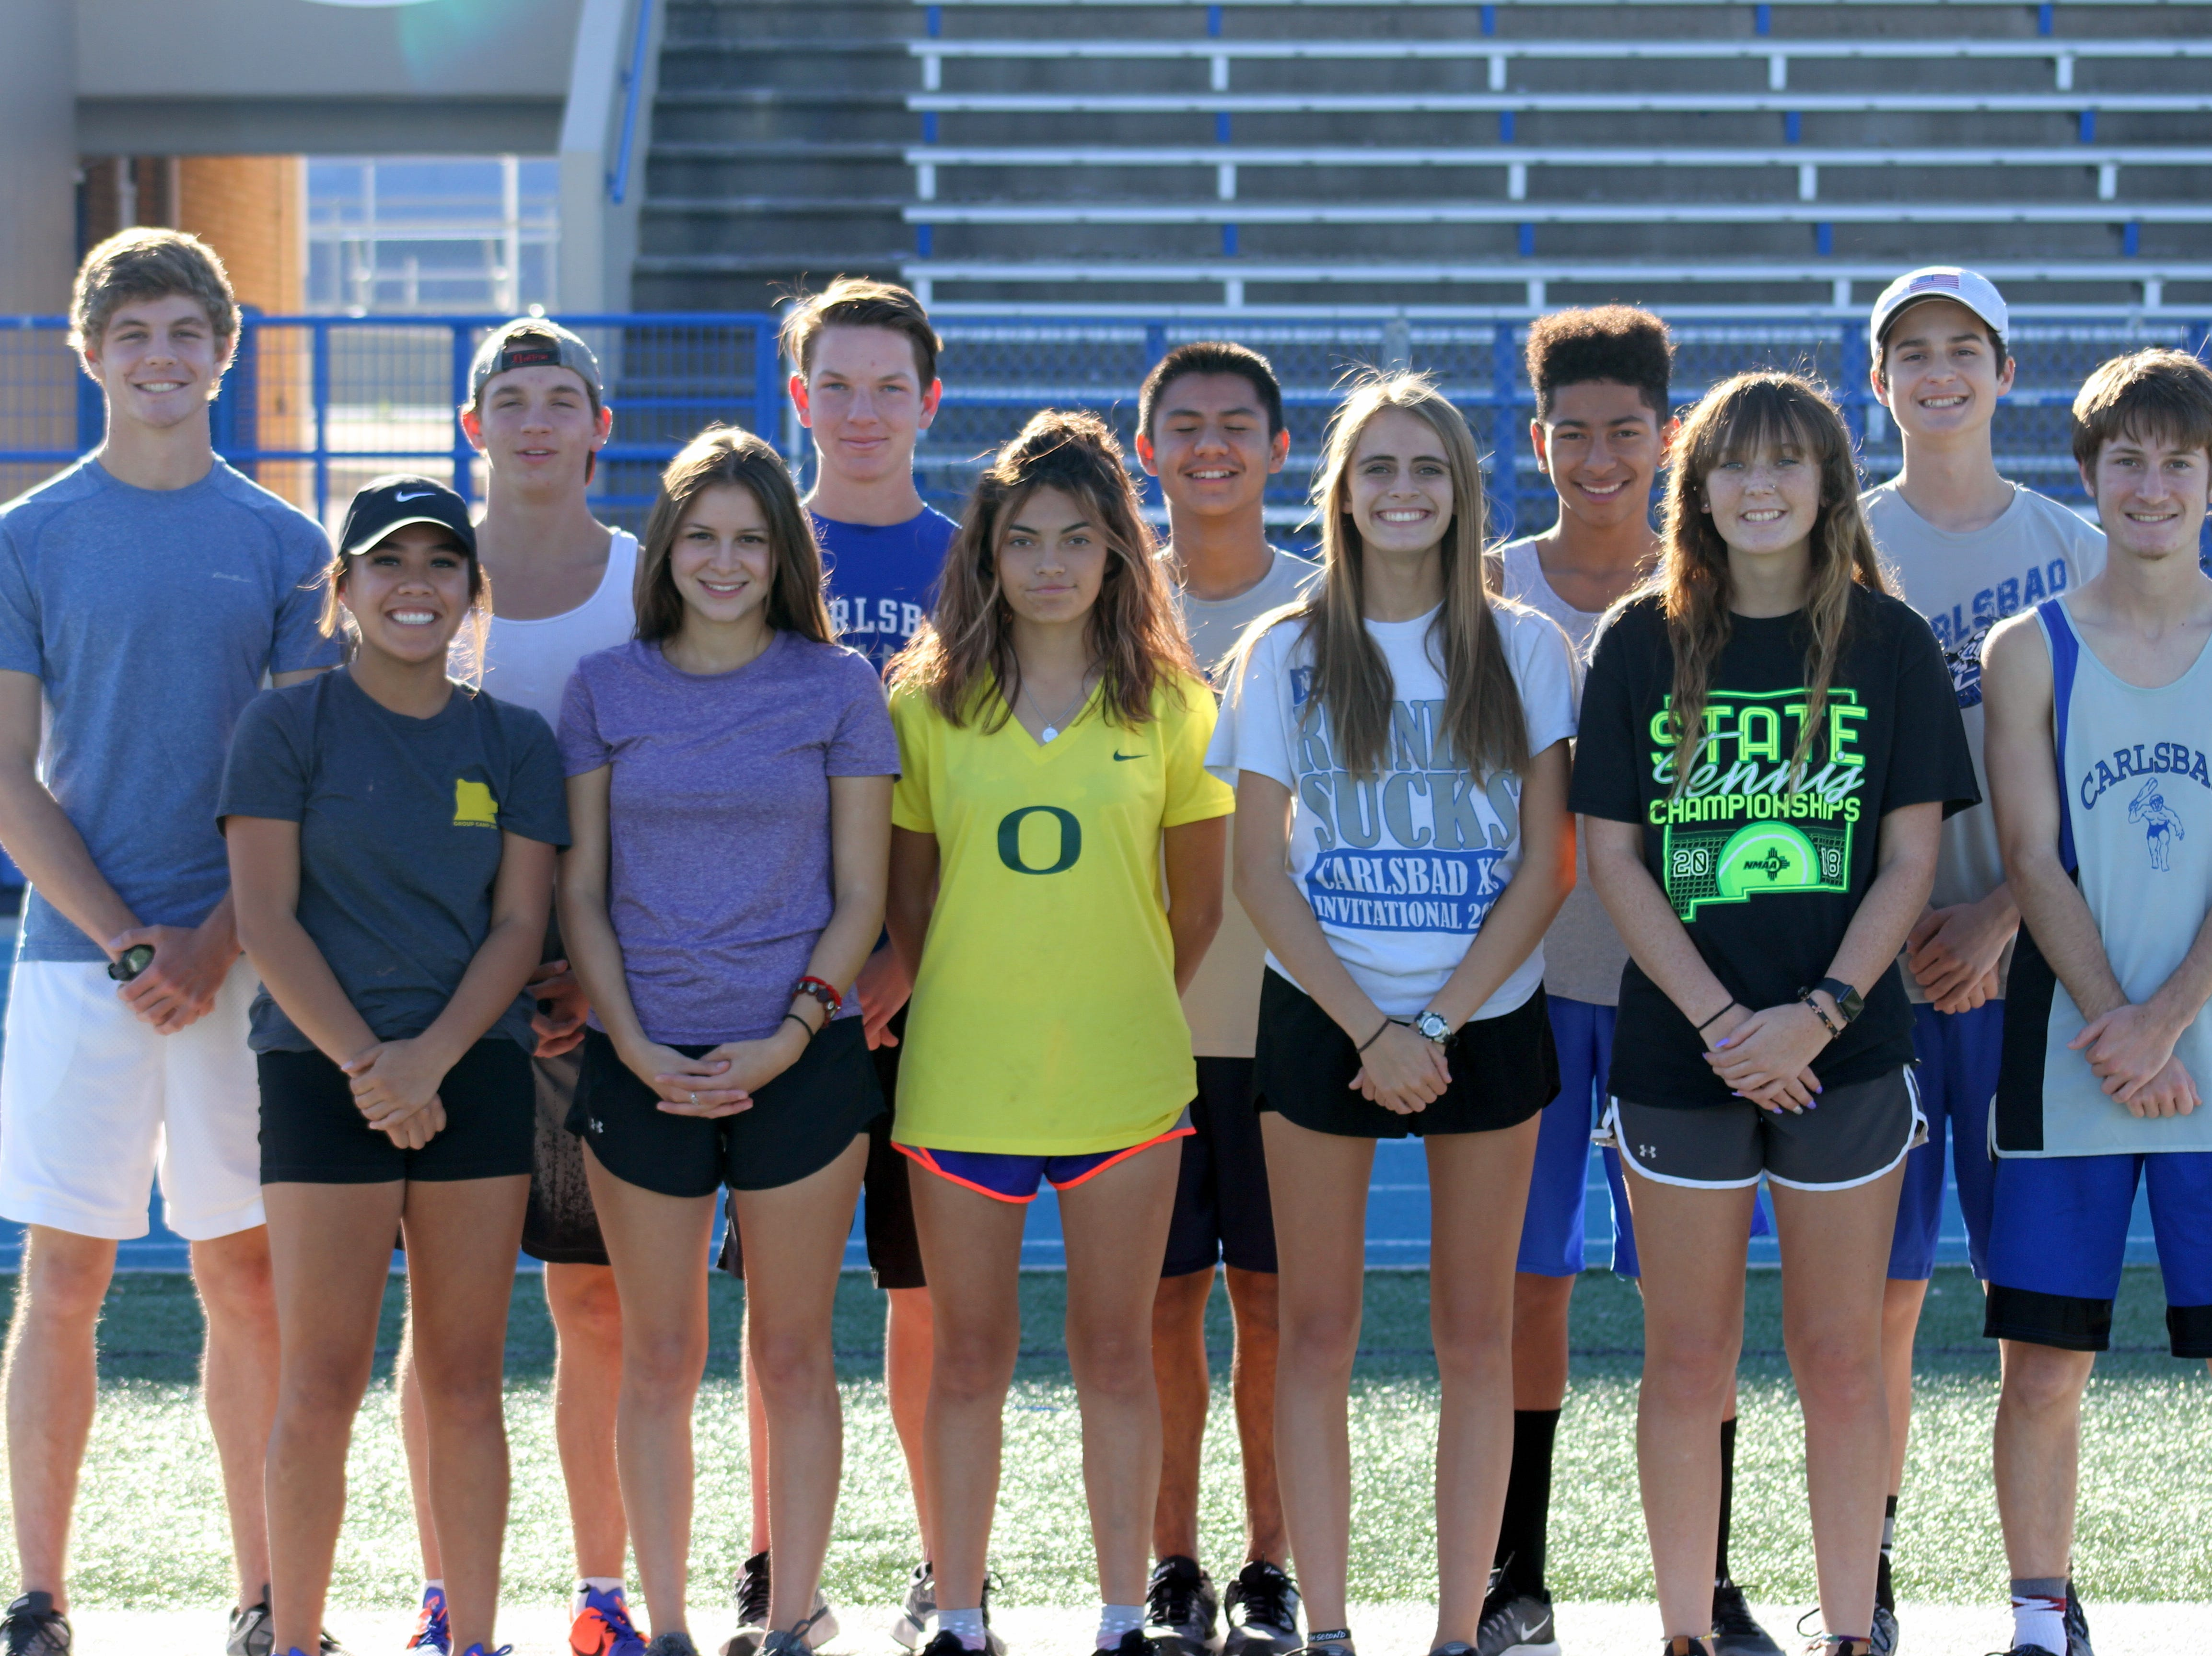 Members of the 2018 Carlsbad Caveman cross country team pose before Wednesday's practice. For the first time in three years Carlsbad will be sending both its boys and girls cross country teams to compete in the state meet.